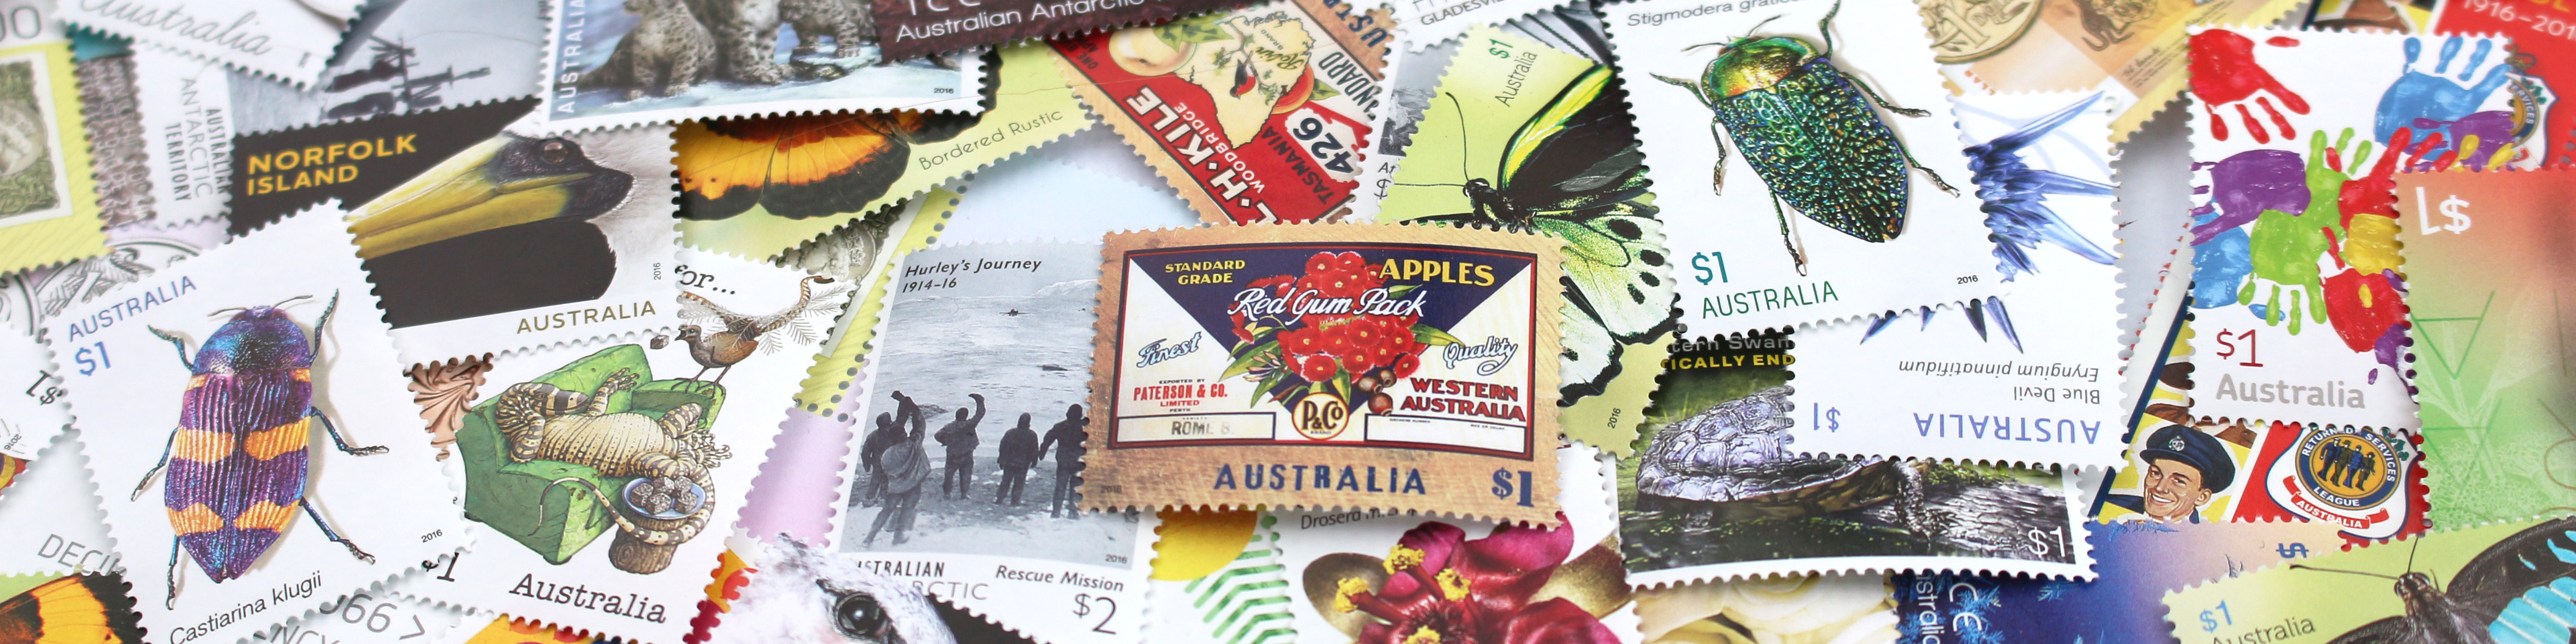 Stamps through time: from 1927 up to now - Australia Post